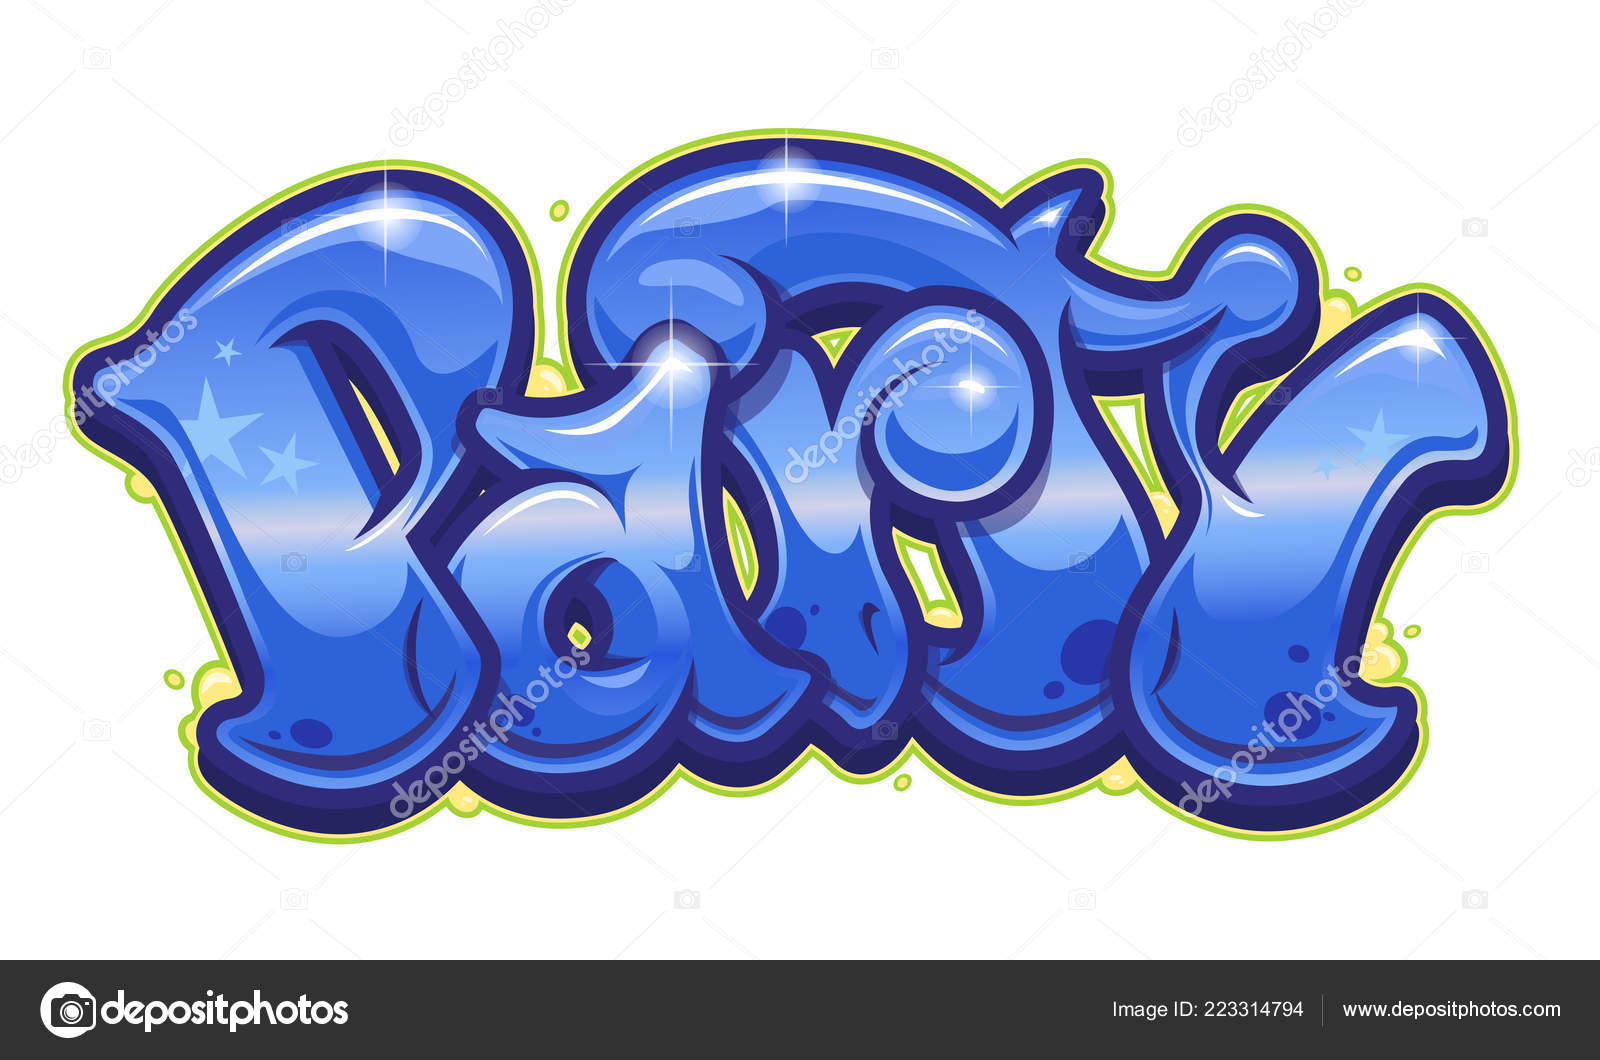 Party word readable graffiti style vibrant customizable colors stock vector